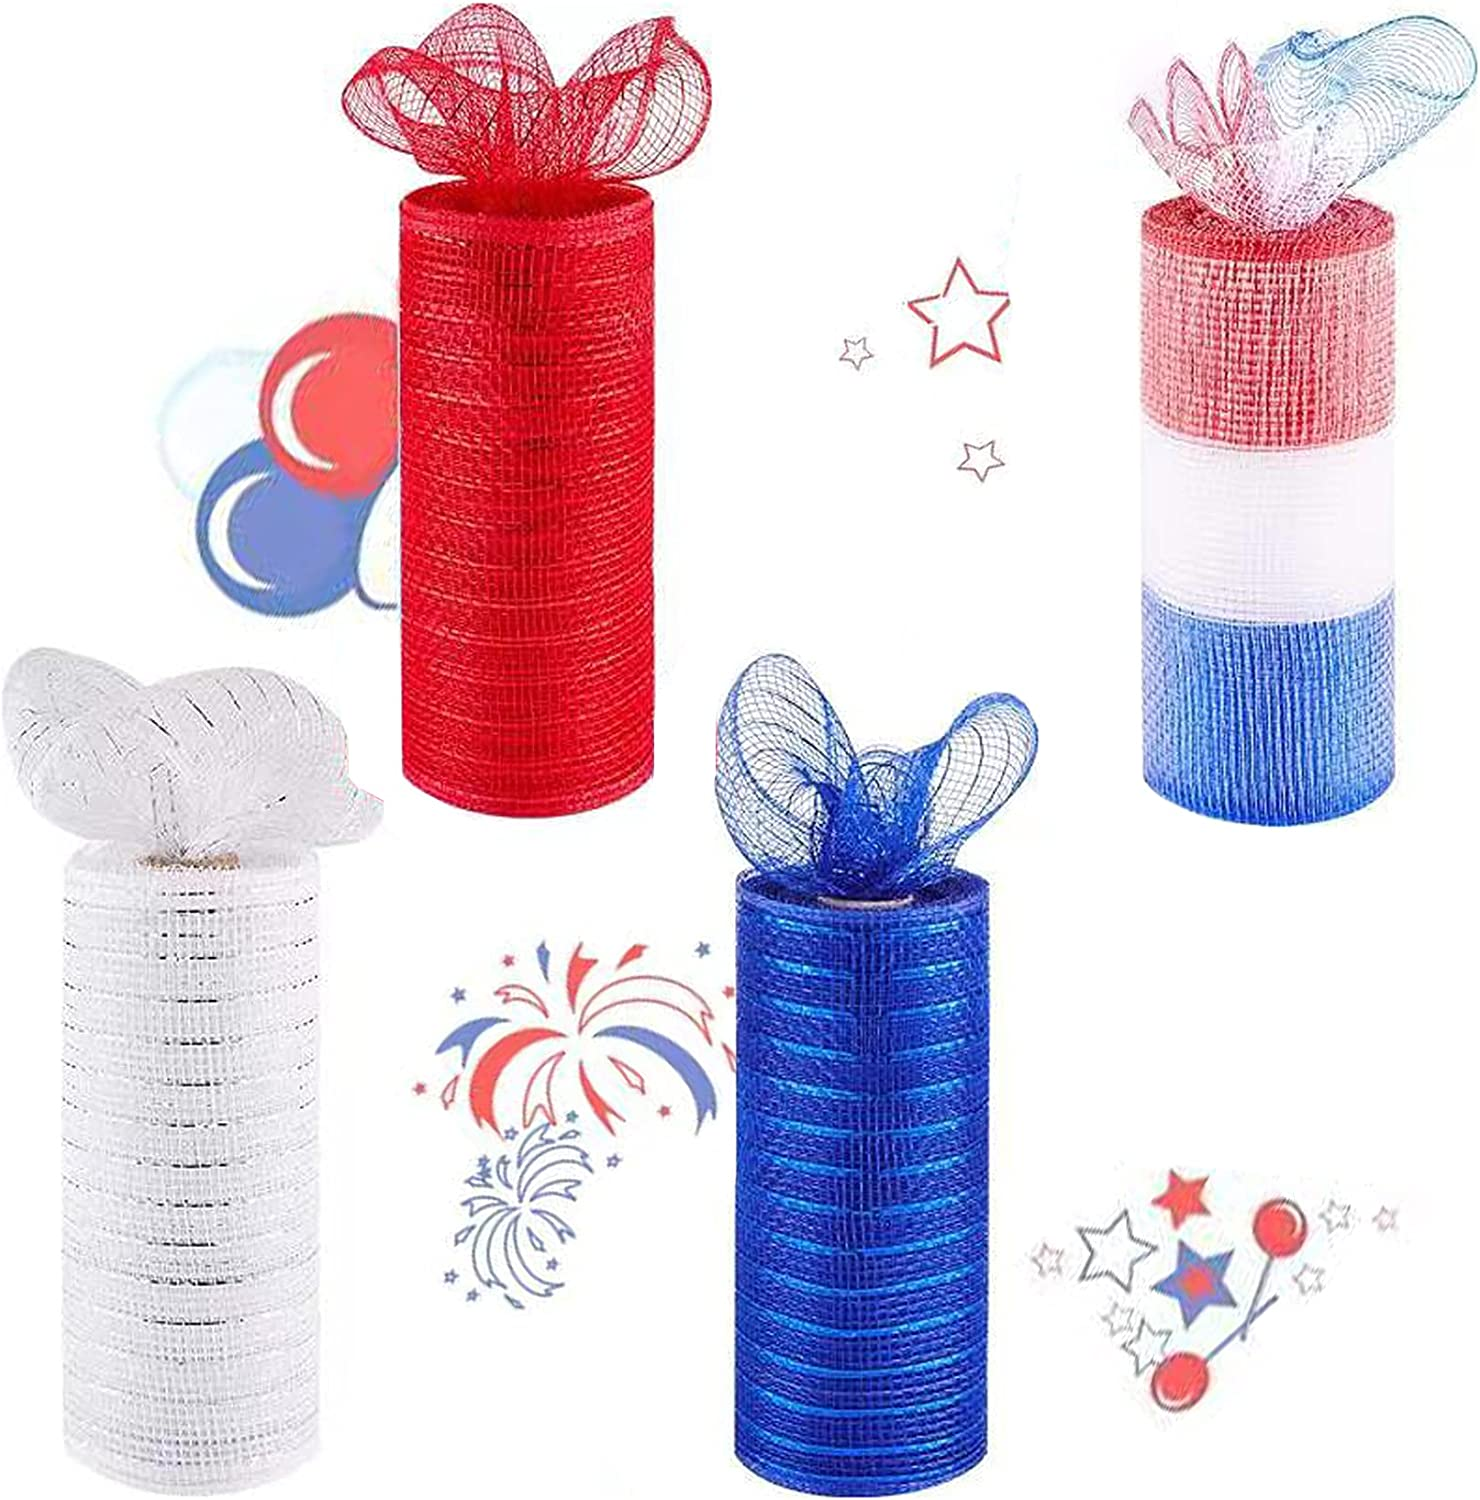 4 Pack Patriotic Decorative Mesh Ribbon 6in x 30Feet Each Roll Metallic Foil Red/White/Blue/Mixing Color Set for Wreaths, Swags and Decorating